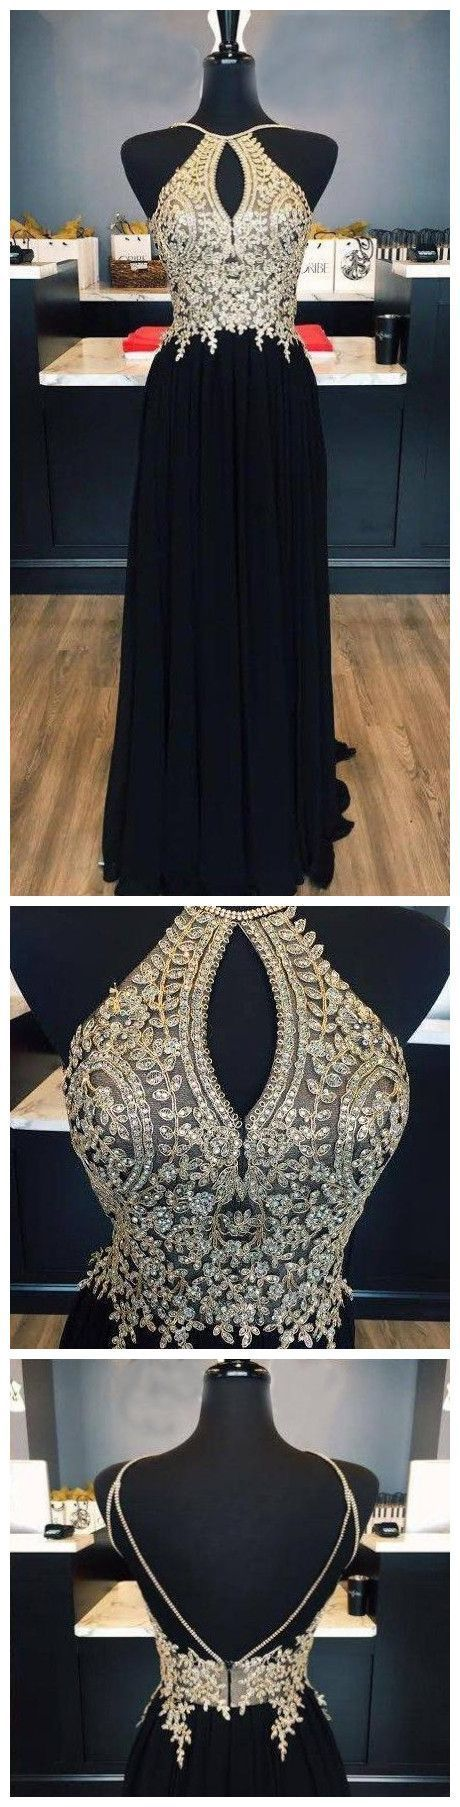 CHIC BLACK GOLD PROM DRESS A-LINE SPAGHETTI STRAPS APPLIQUE LONG PROM DRESS